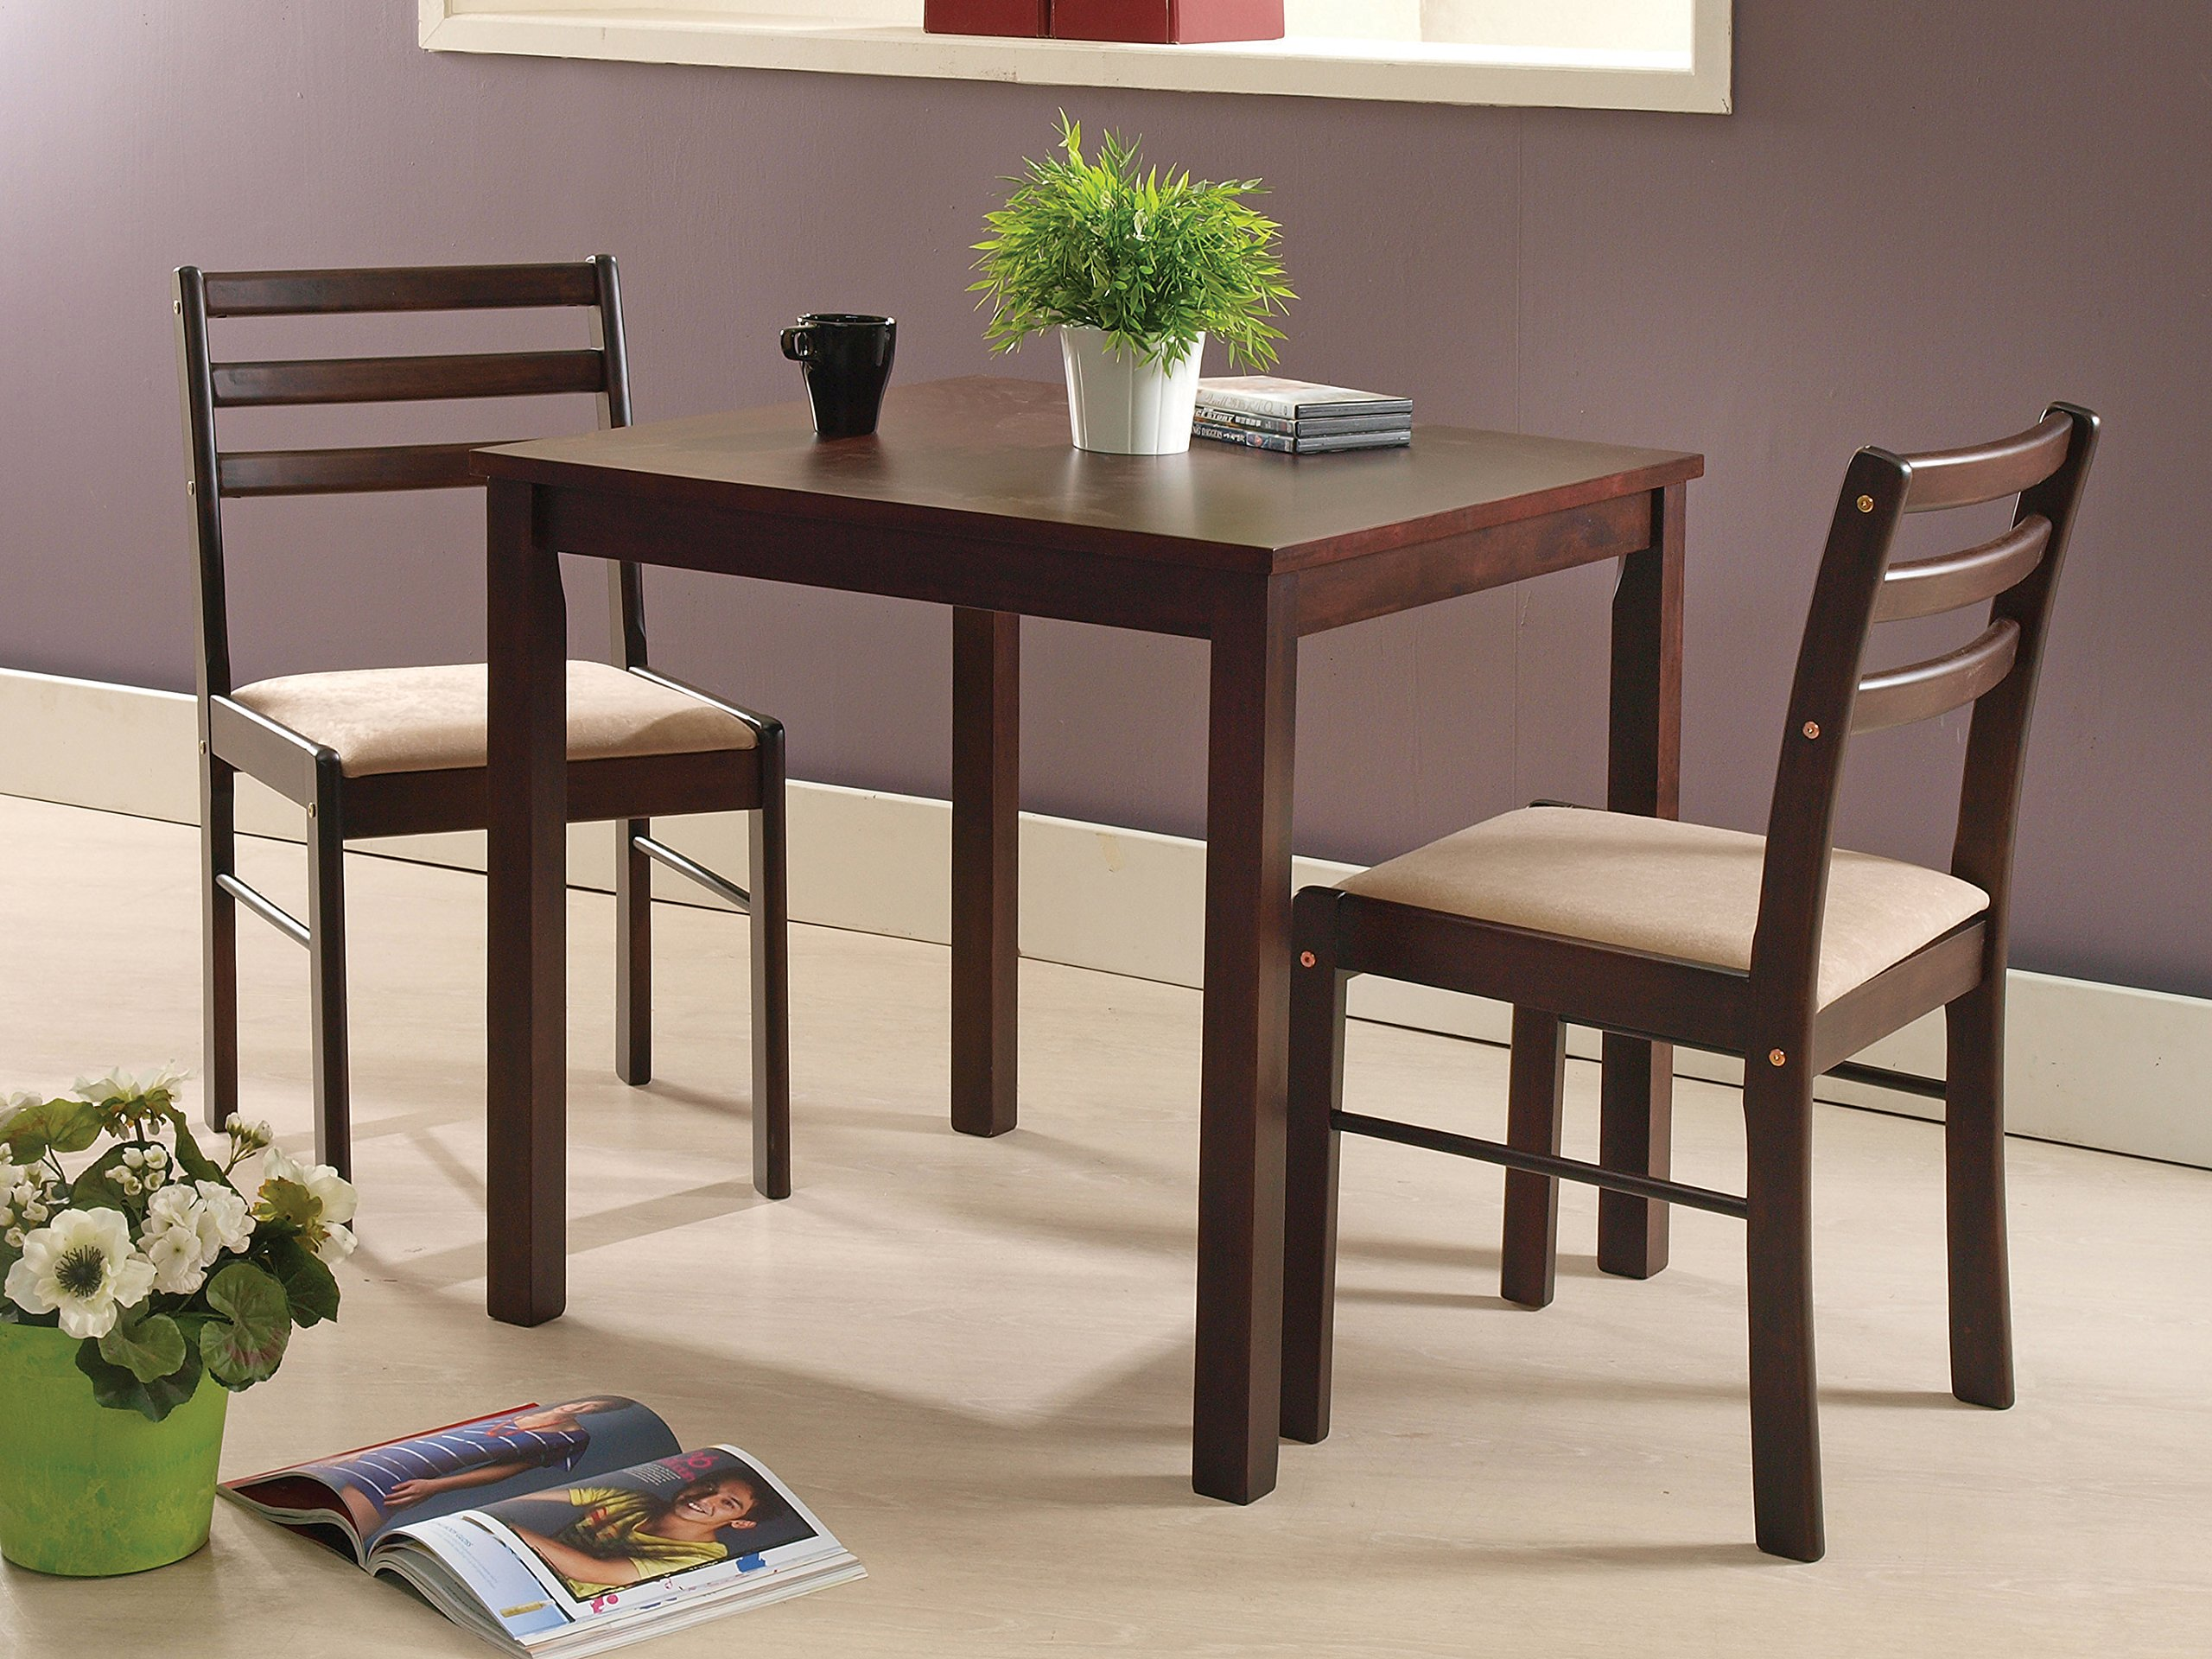 Kings Brand Furniture 3 Piece Dining Room Kitchen Dinette Set, Table & 2 Chairs by Kings Brand Furniture